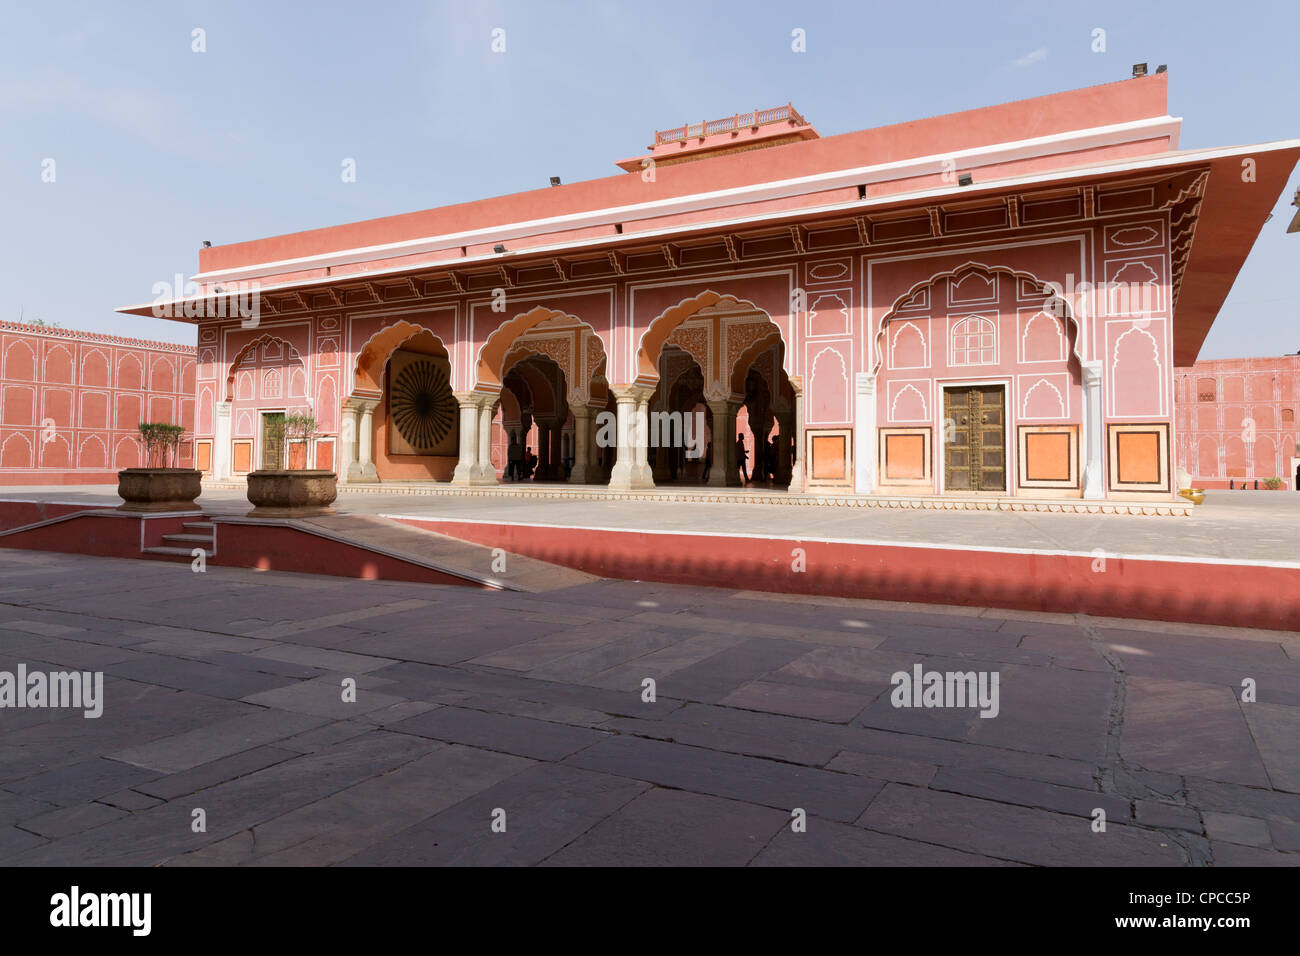 City Palace, Jaipur, which includes the Chandra Mahal and Mubarak Mahal palaces is a palace complex in Jaipur - Stock Image